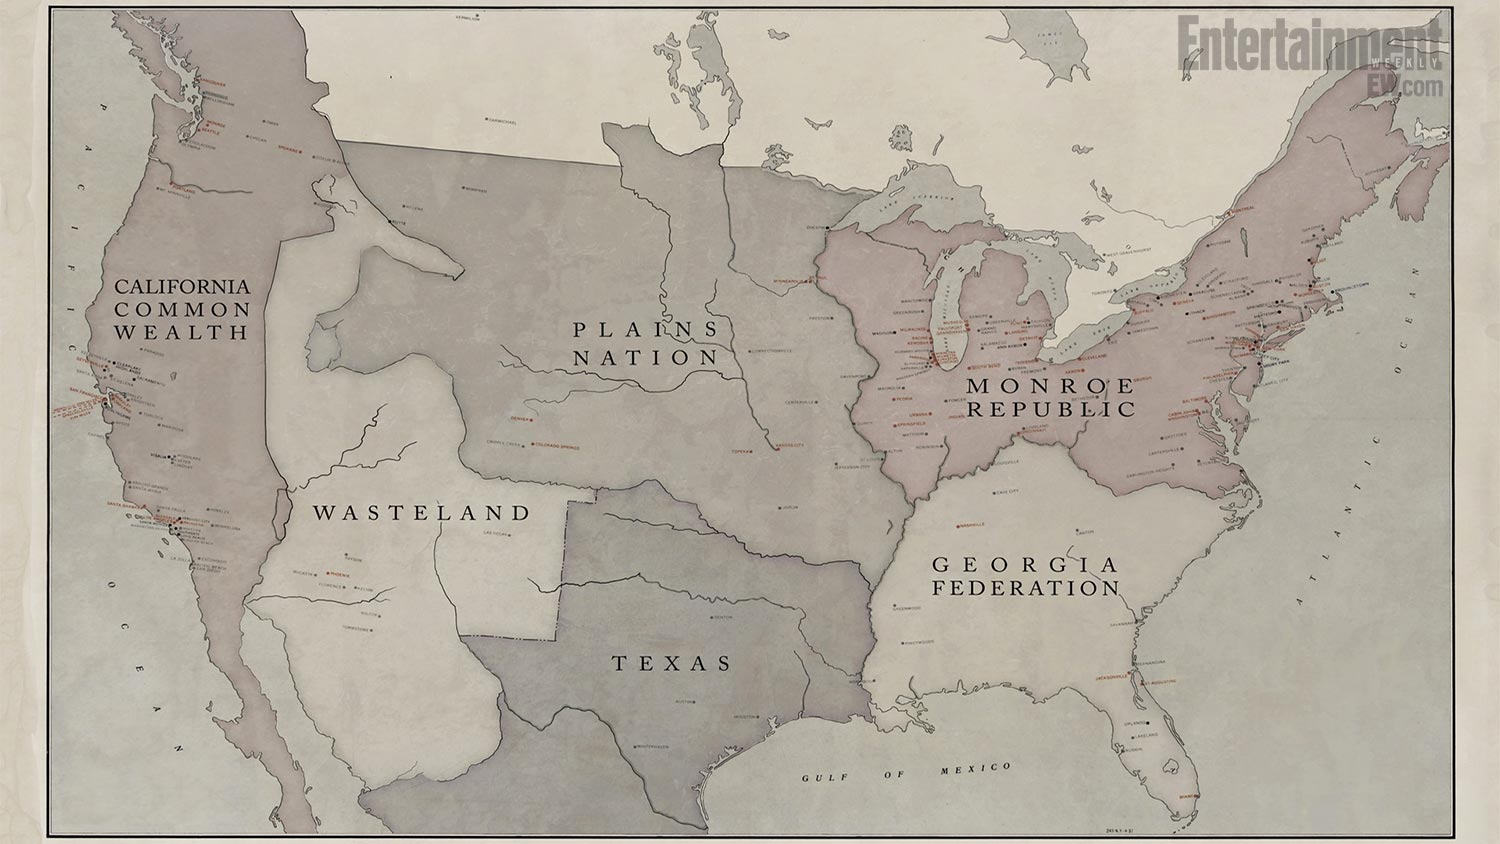 Here Is A Rather Fun Map From Nbc S Revolution Showing The Territories Of The Various Regional Governments 15 Years After The Blackout Enjoy